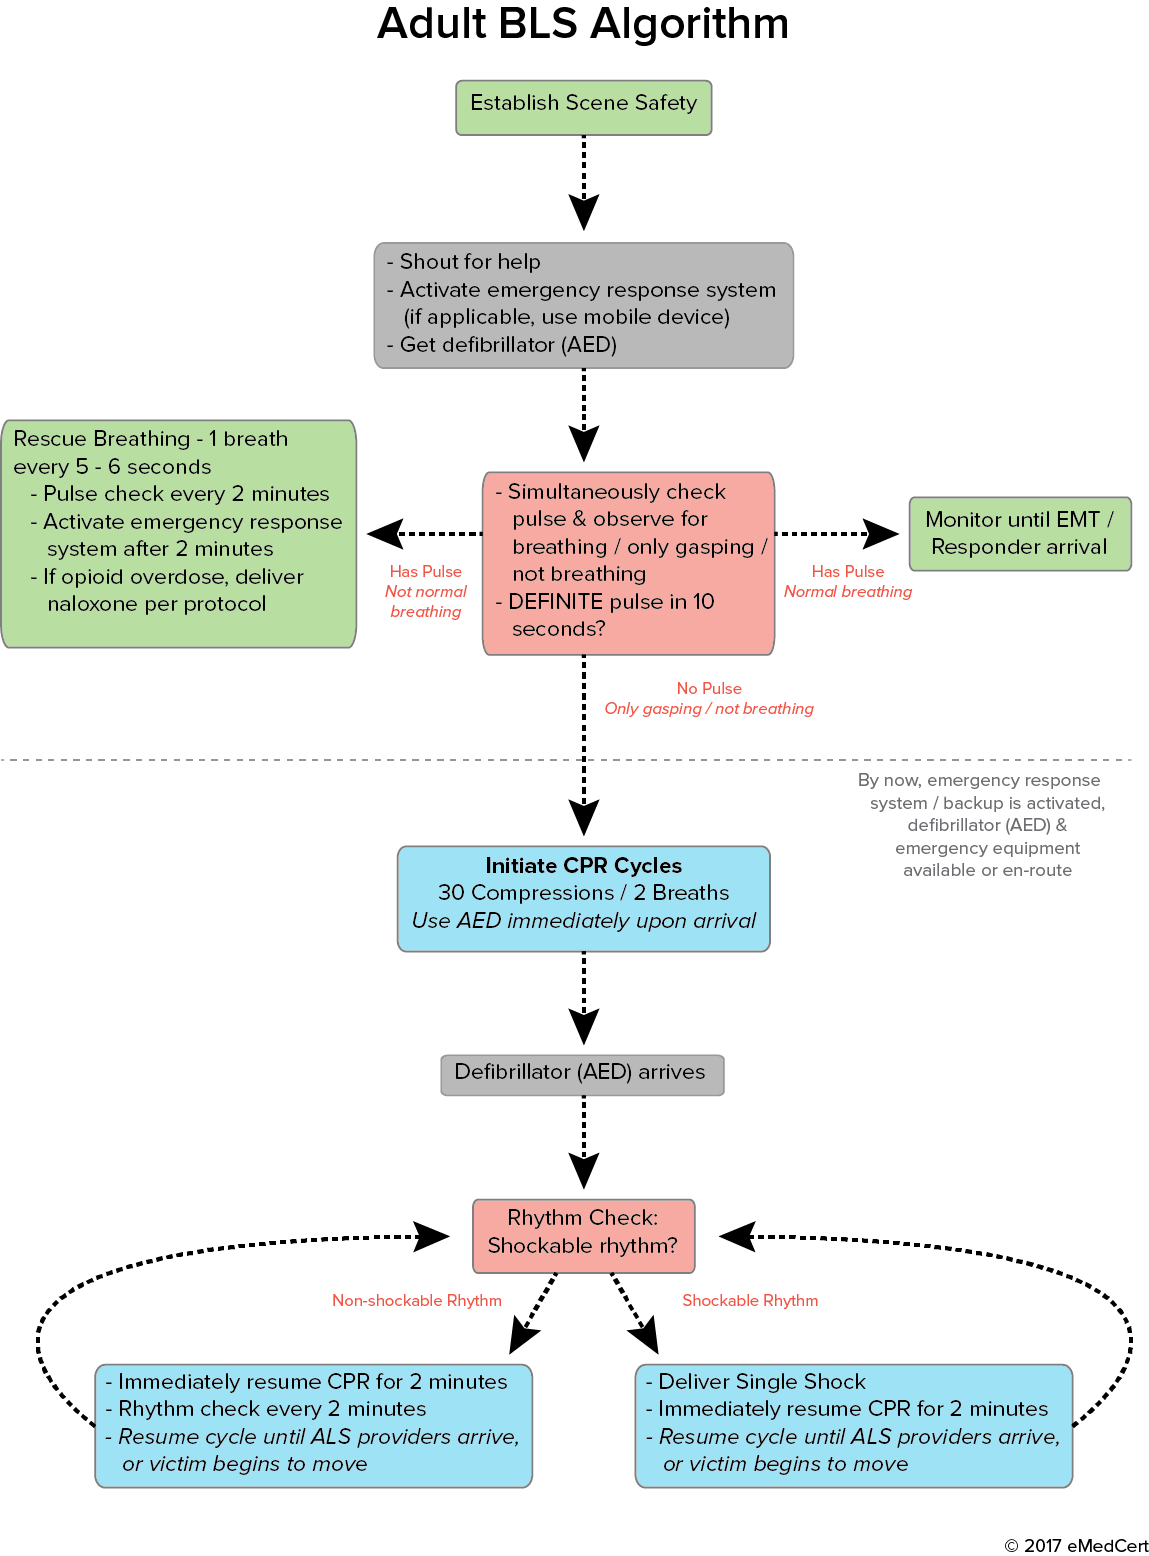 Acls algorithms adult bls algorithm emedcert bshong pinterest heres every acls algorithm you need to be familiar with in order to pass your exam nvjuhfo Gallery